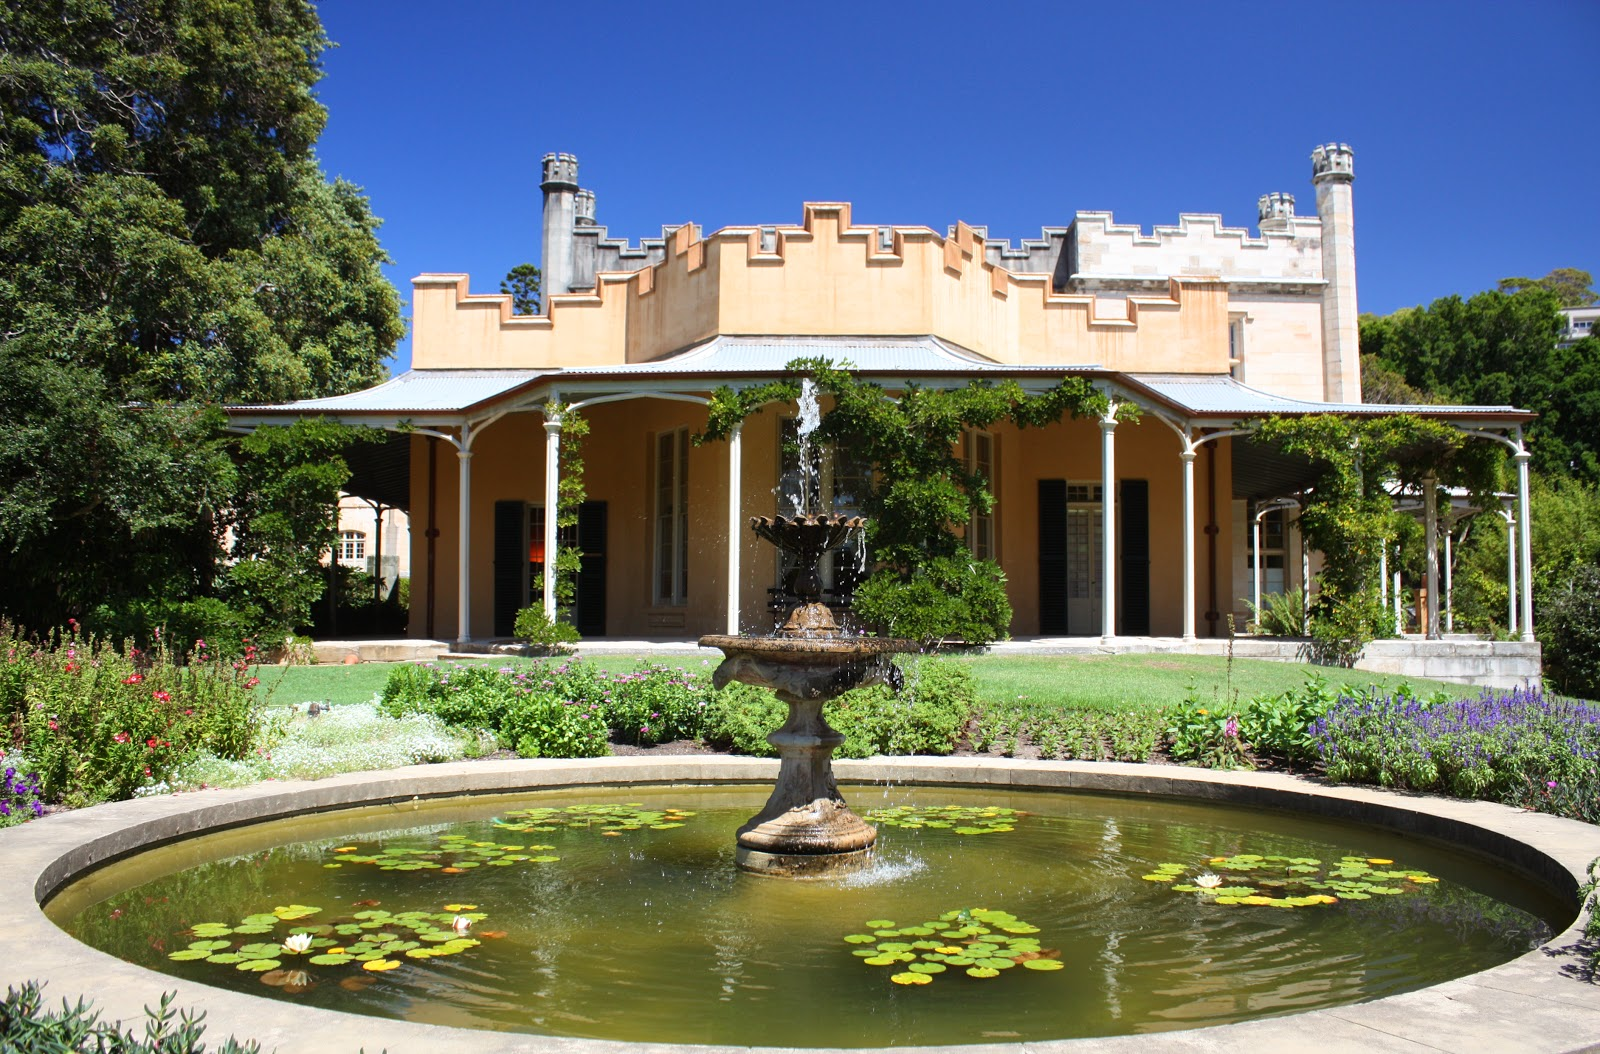 This fountain stands outside Vaucluse House, in the eastern suburb of  Vaucluse, which is named after the historic estate.